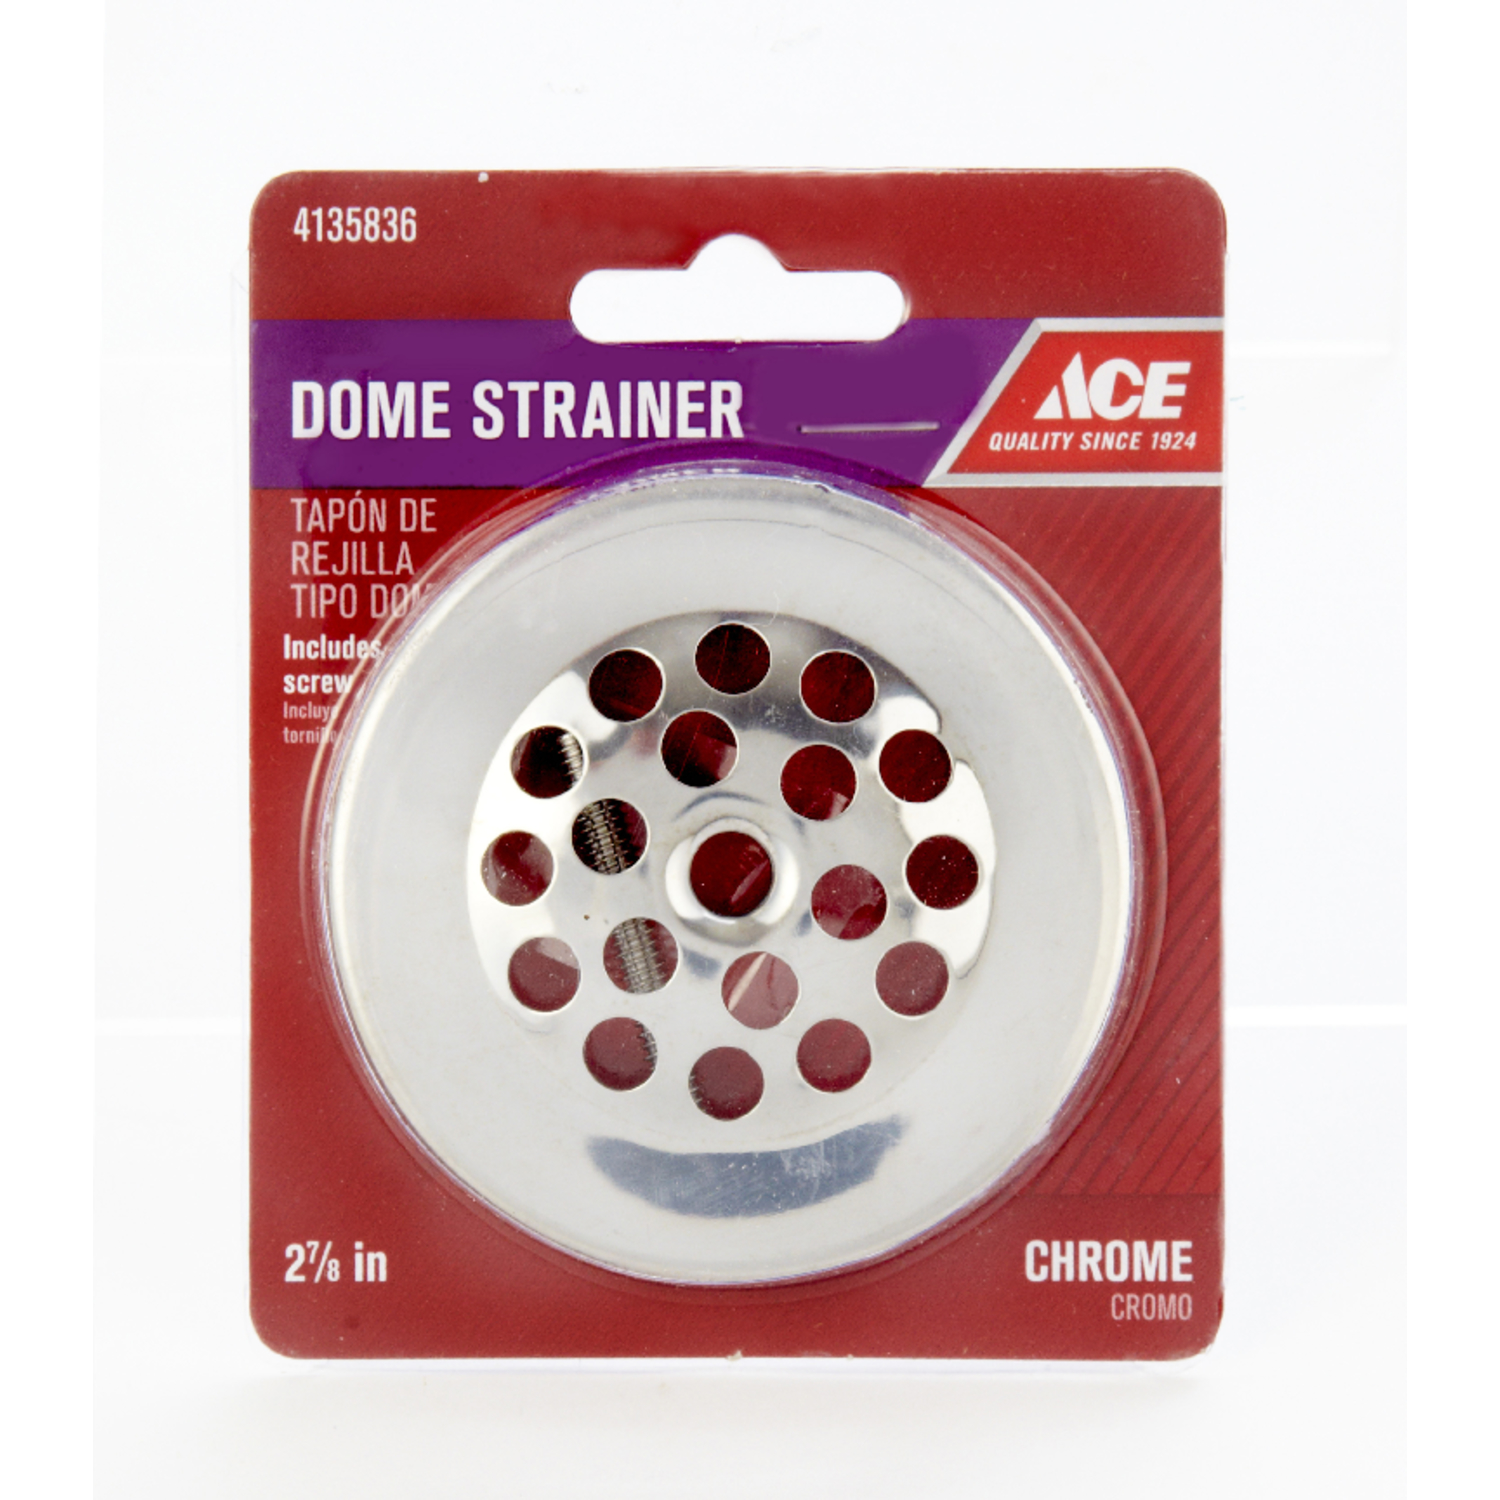 Ace  2-7/8 in. Chrome  Chrome  Dome Strainer